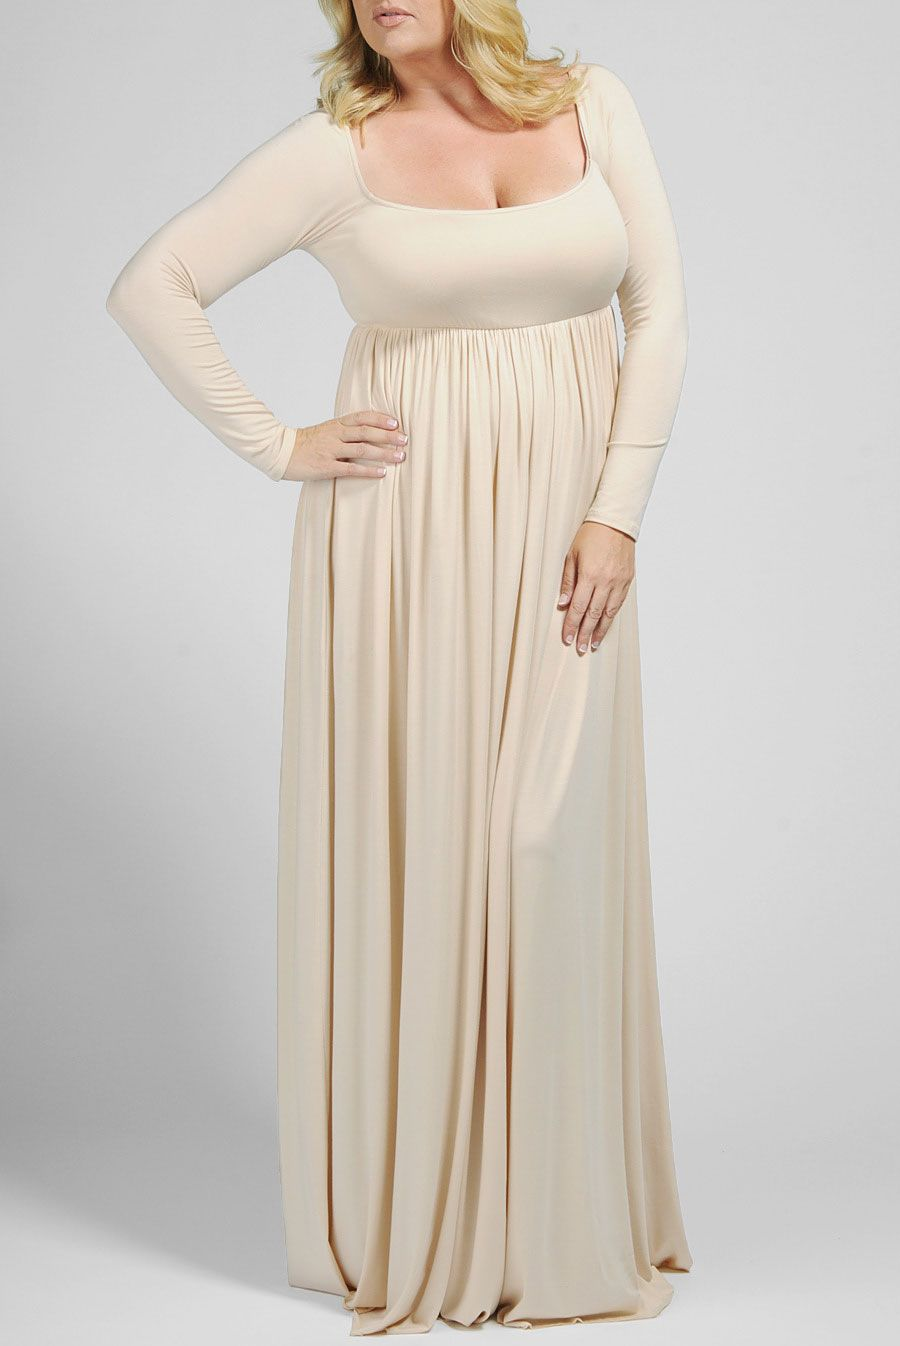 Isa dress rachel pally official store great maternity dress isa dress rachel pally official store great maternity dress ombrellifo Images